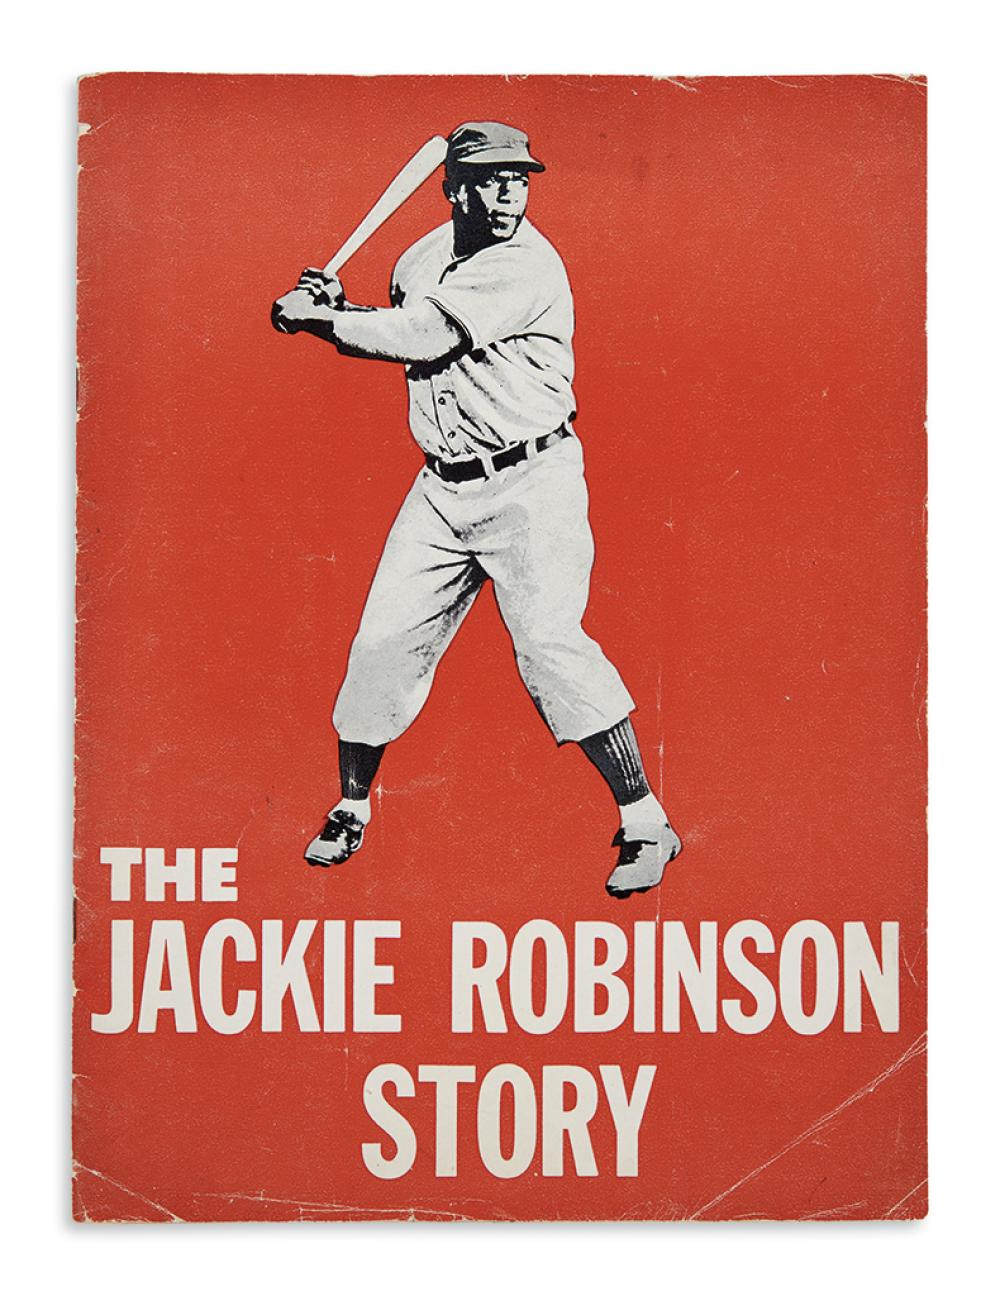 (SPORTS--BASEBALL.) Group of 8 items relating to the 1950 film The Jackie Robinson Story.